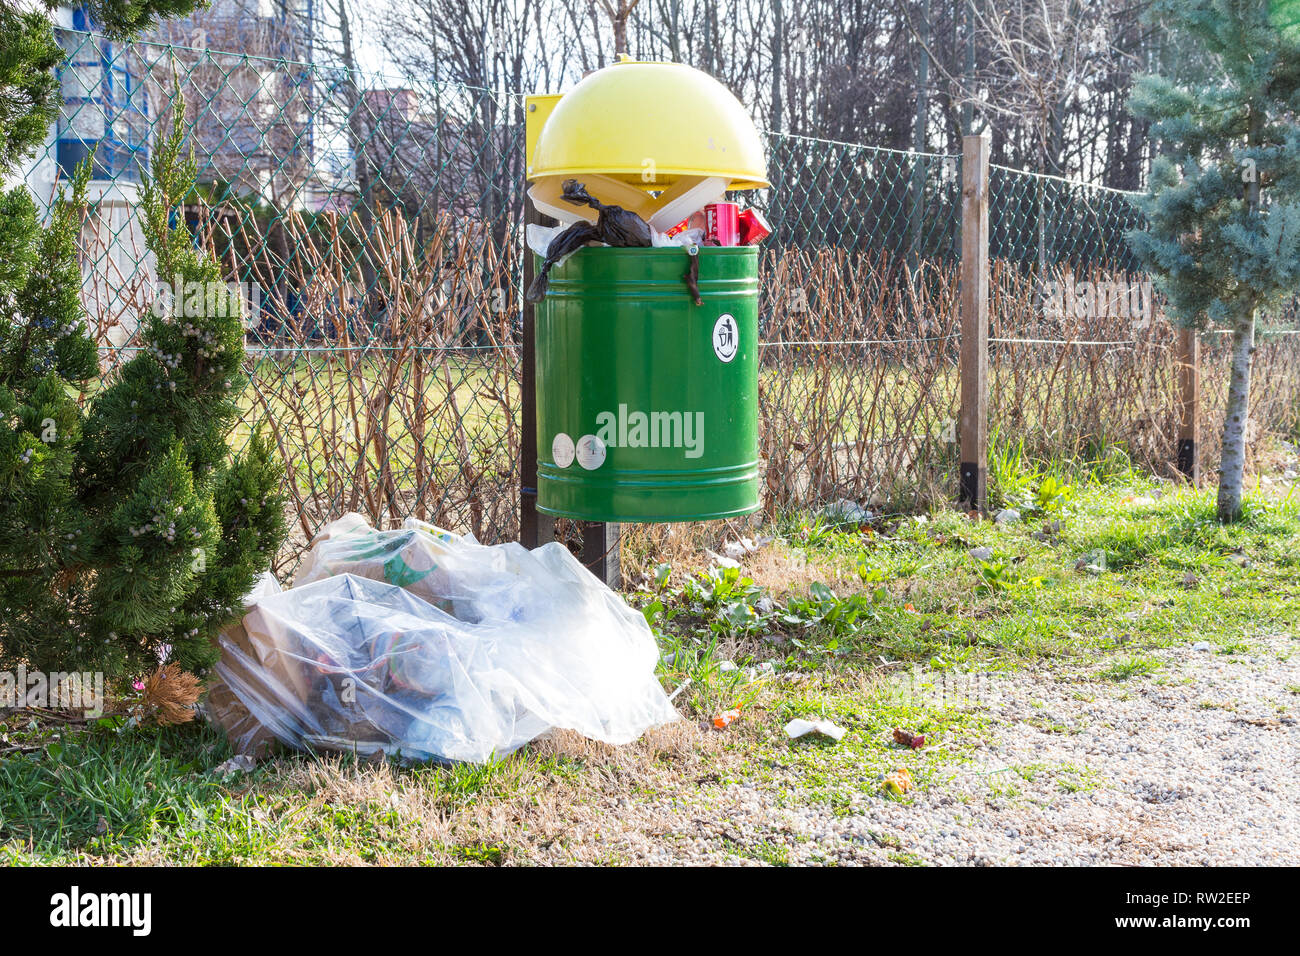 Trash bin full of garbage with a bag of rubbish next to it on playground - Stock Image